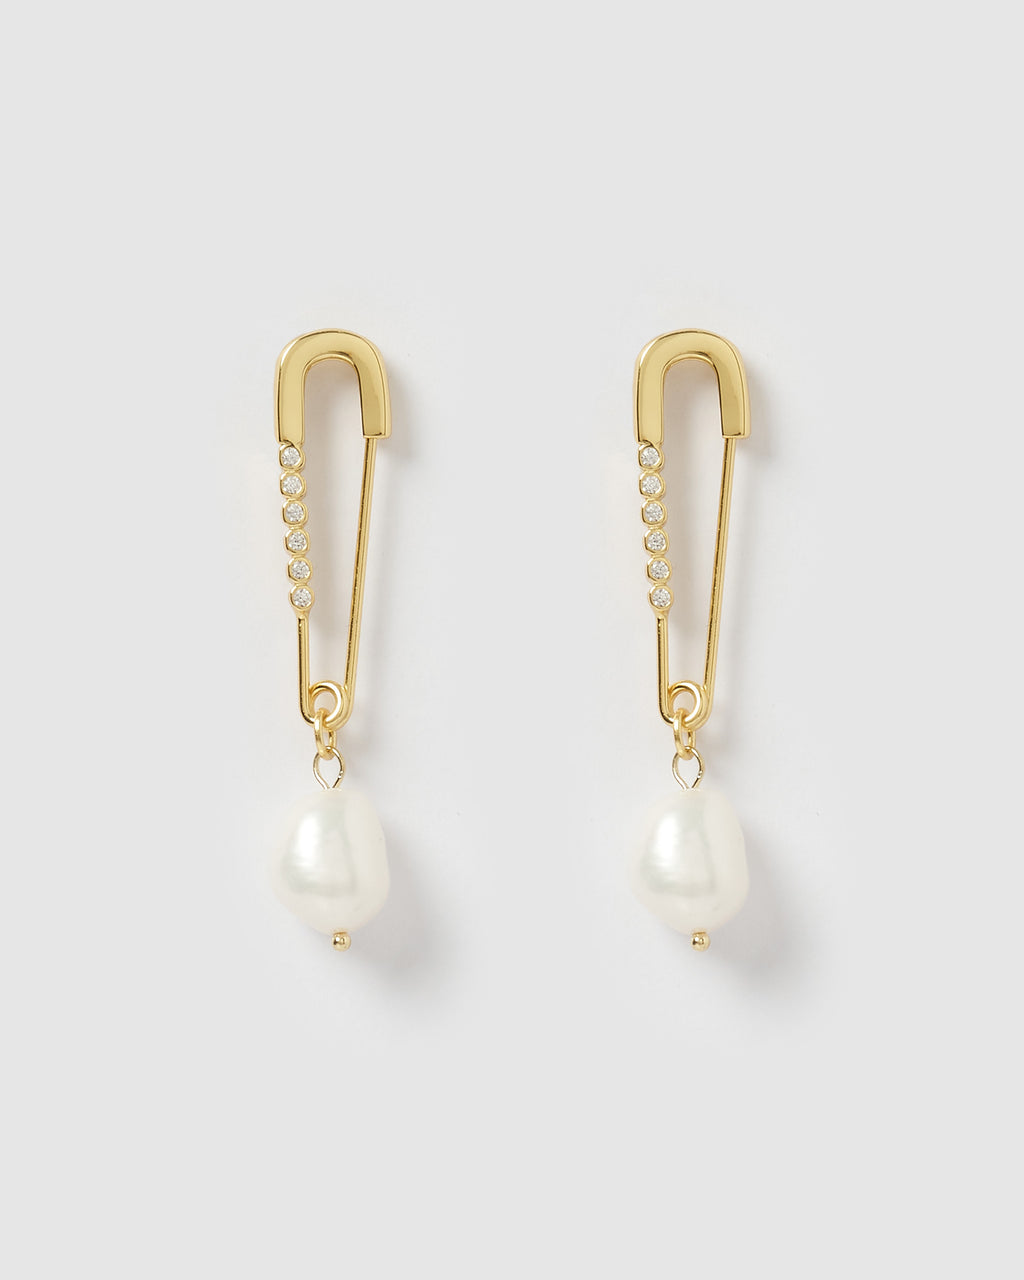 Izoa Lola Safety Pin Earrings Gold